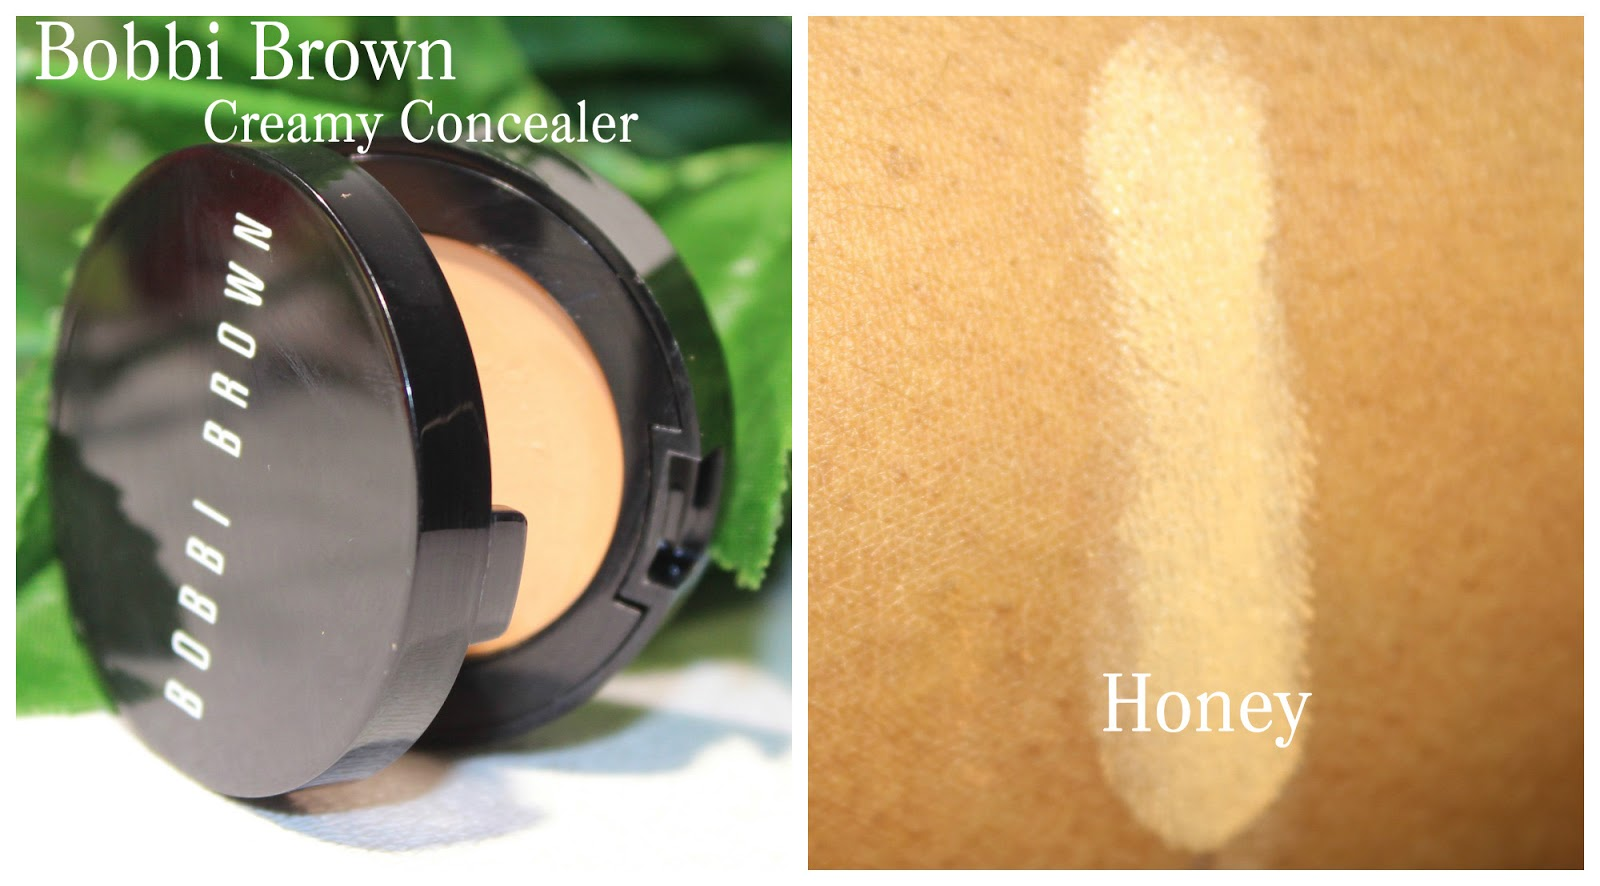 Bobbi Brown Creamy Concealer in Honey